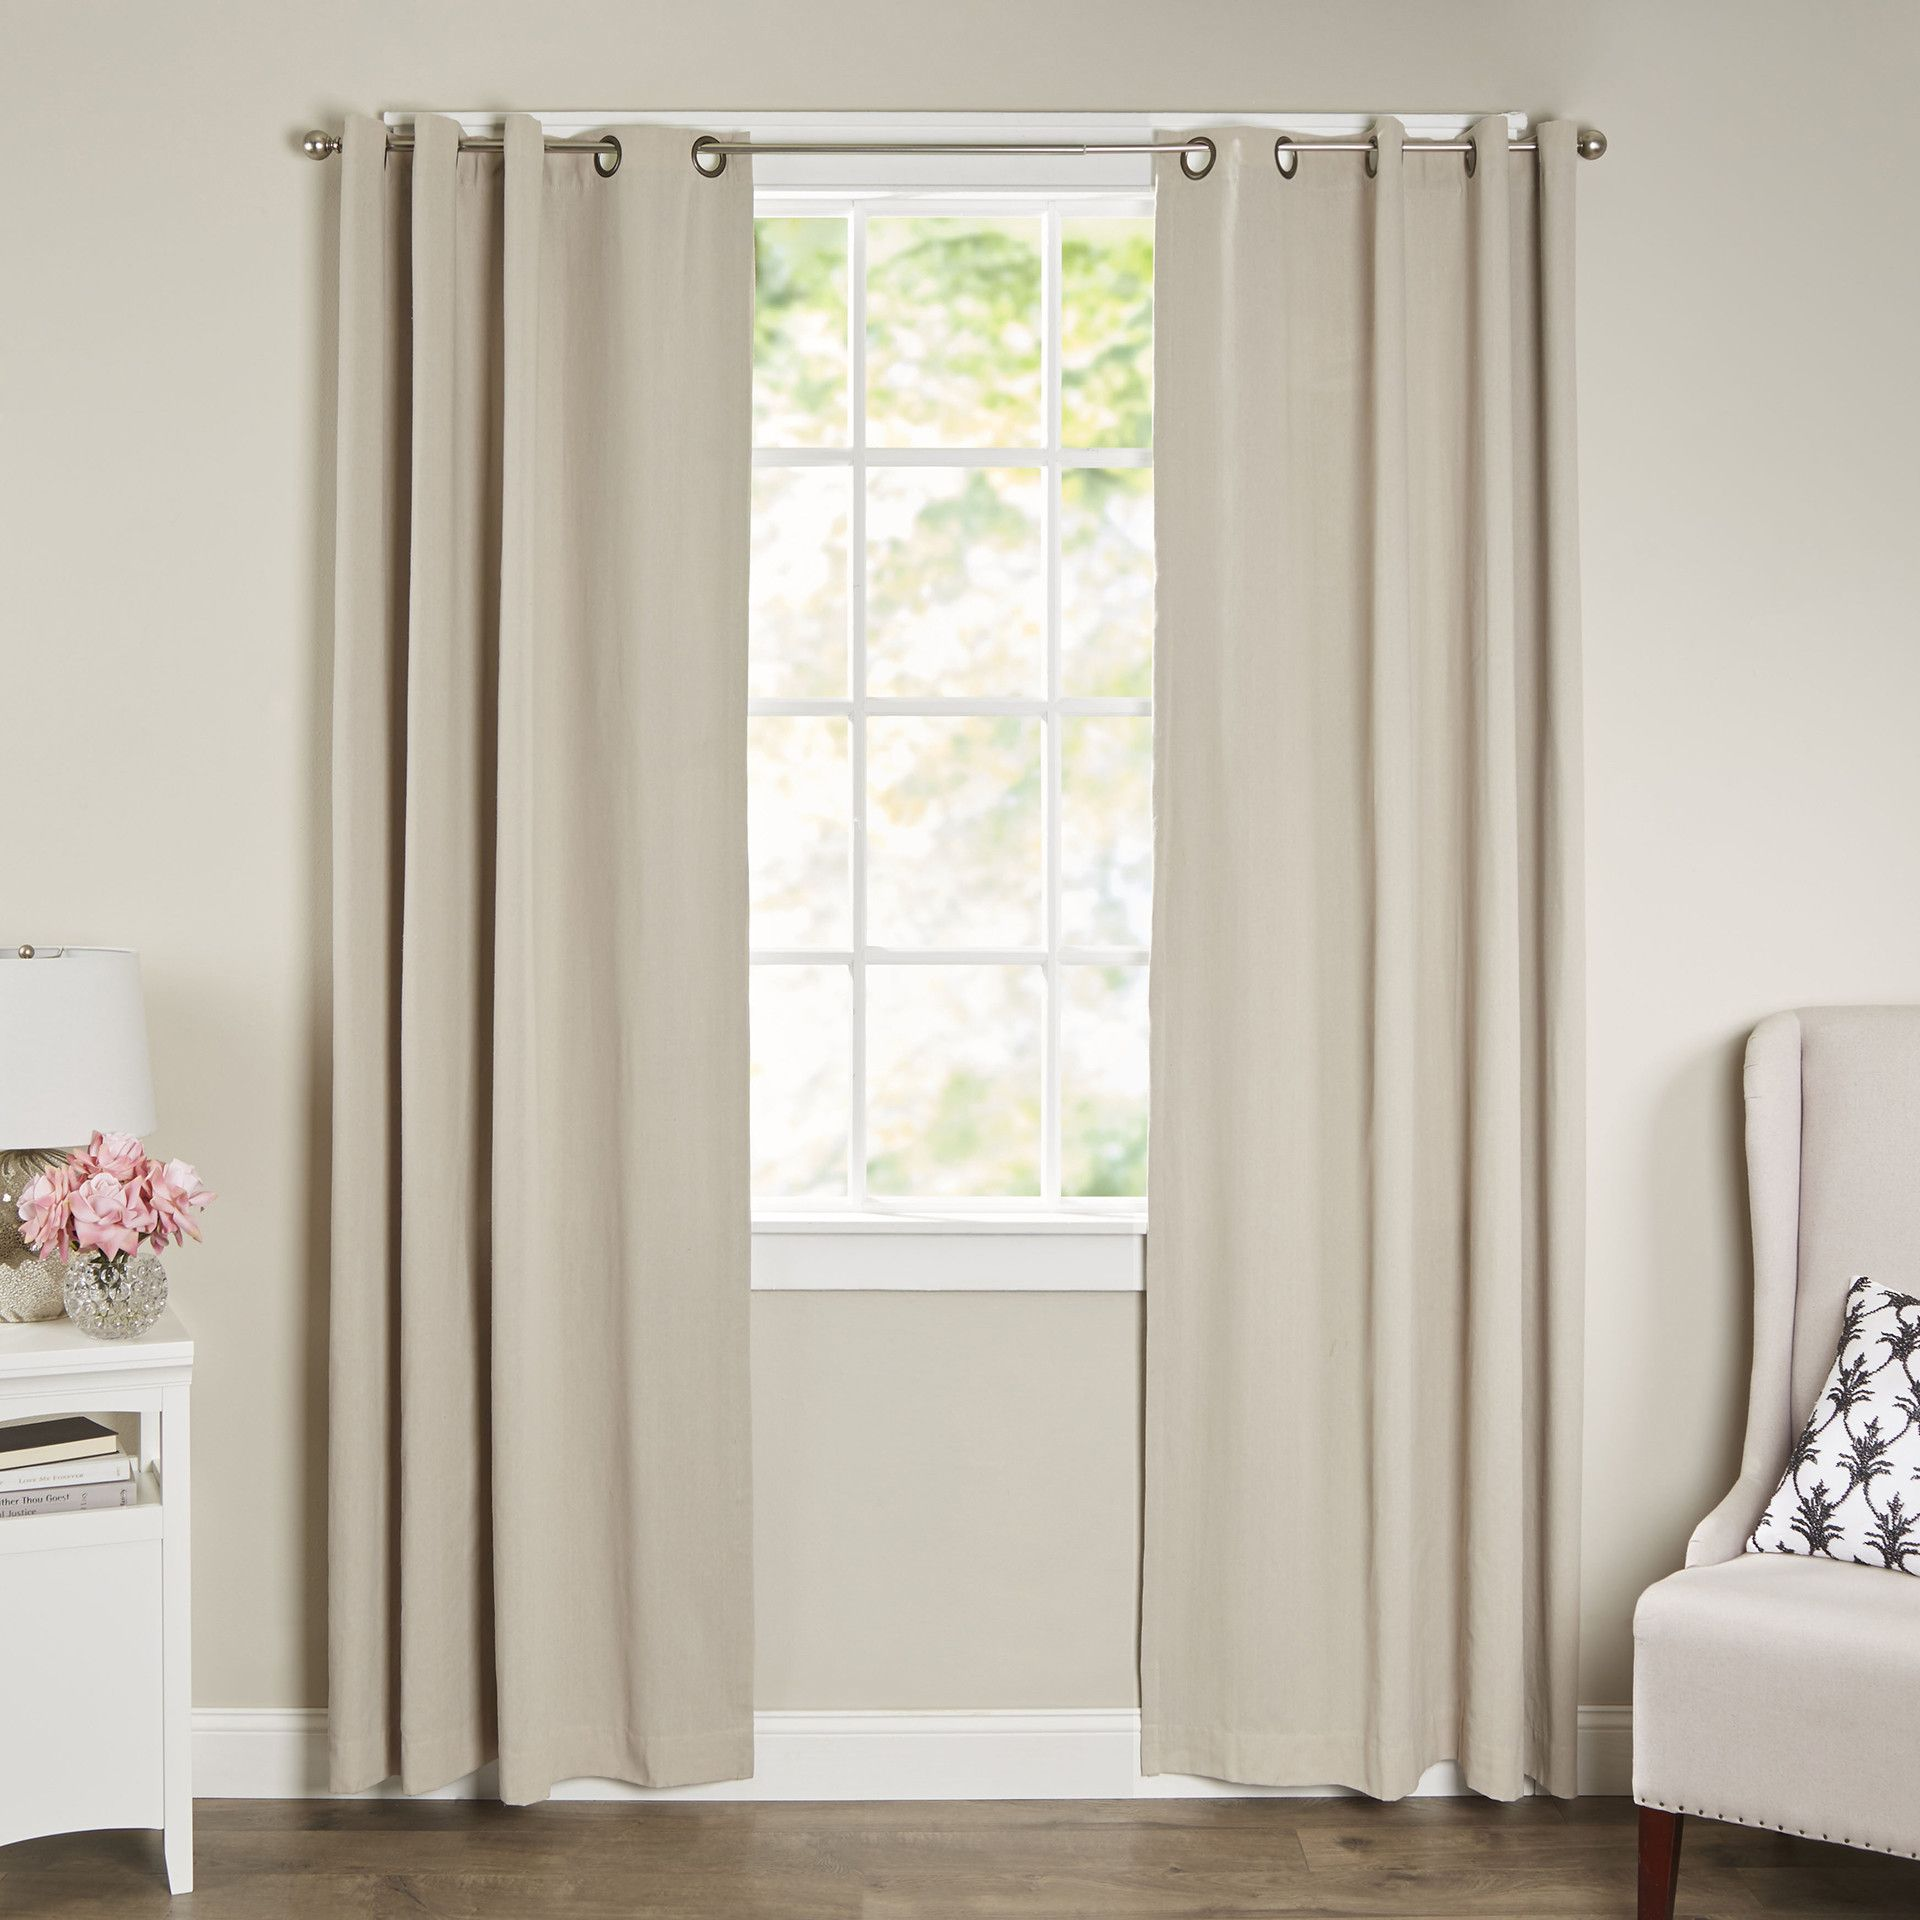 Window coverings types  remmy grommet single curtain panel  products  pinterest  products